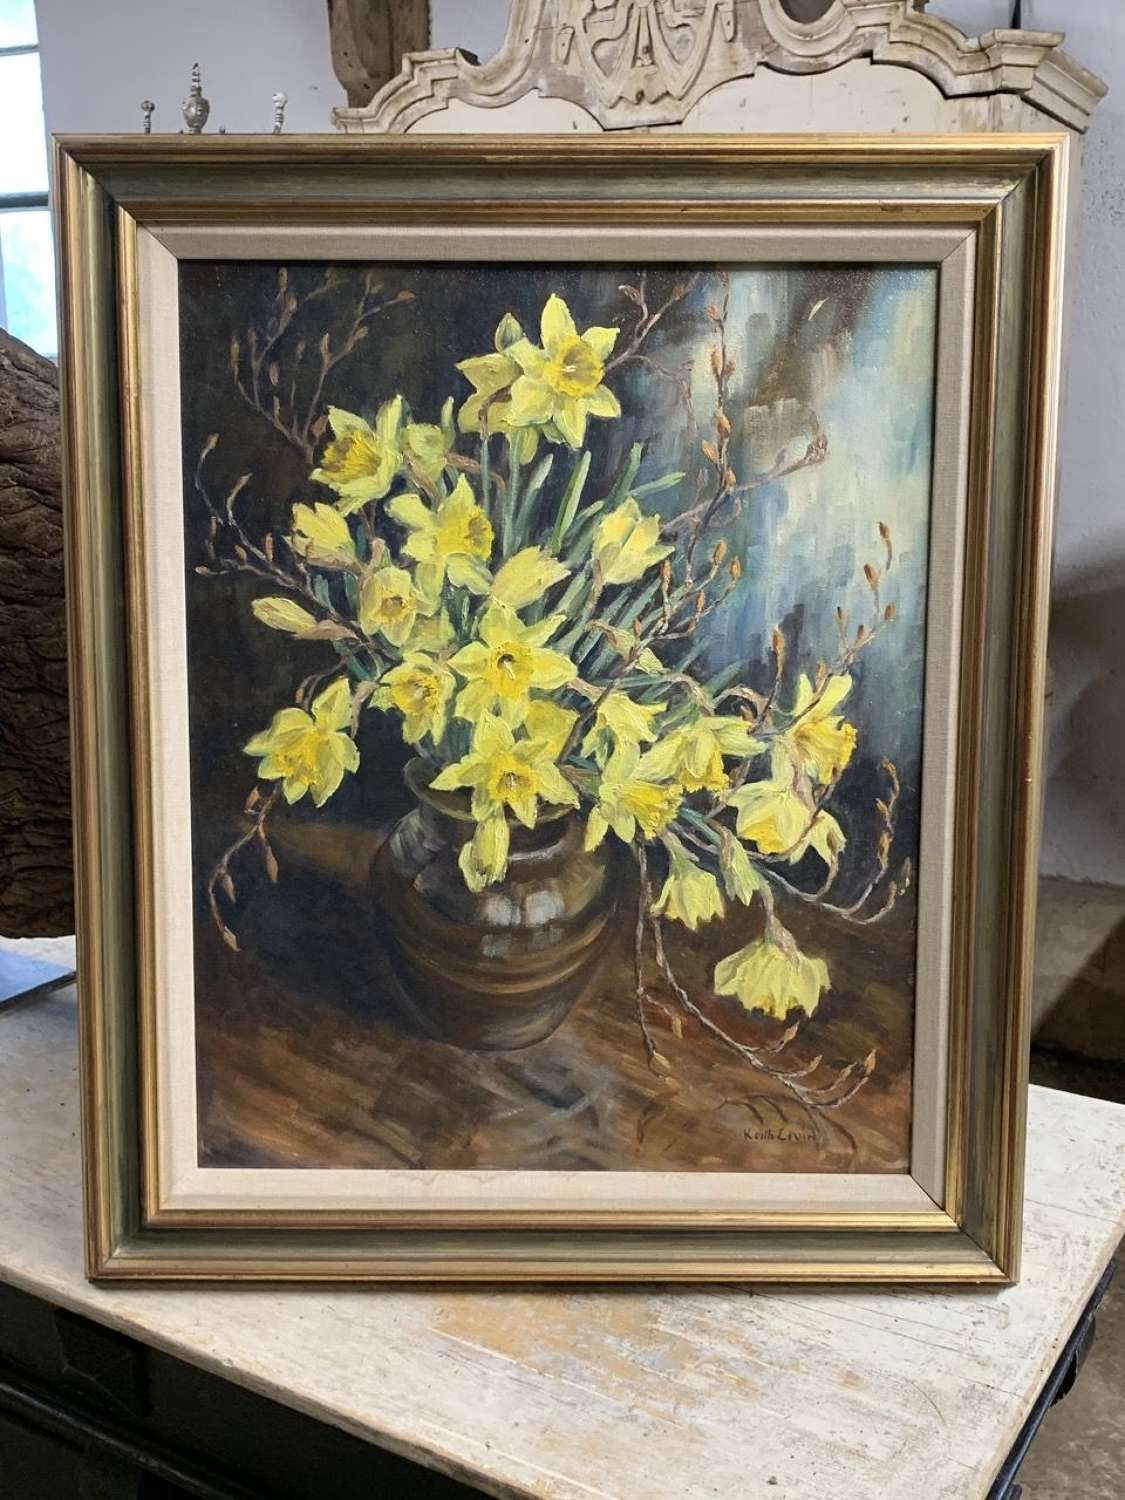 DAFFODILS OIL ON CANVAS